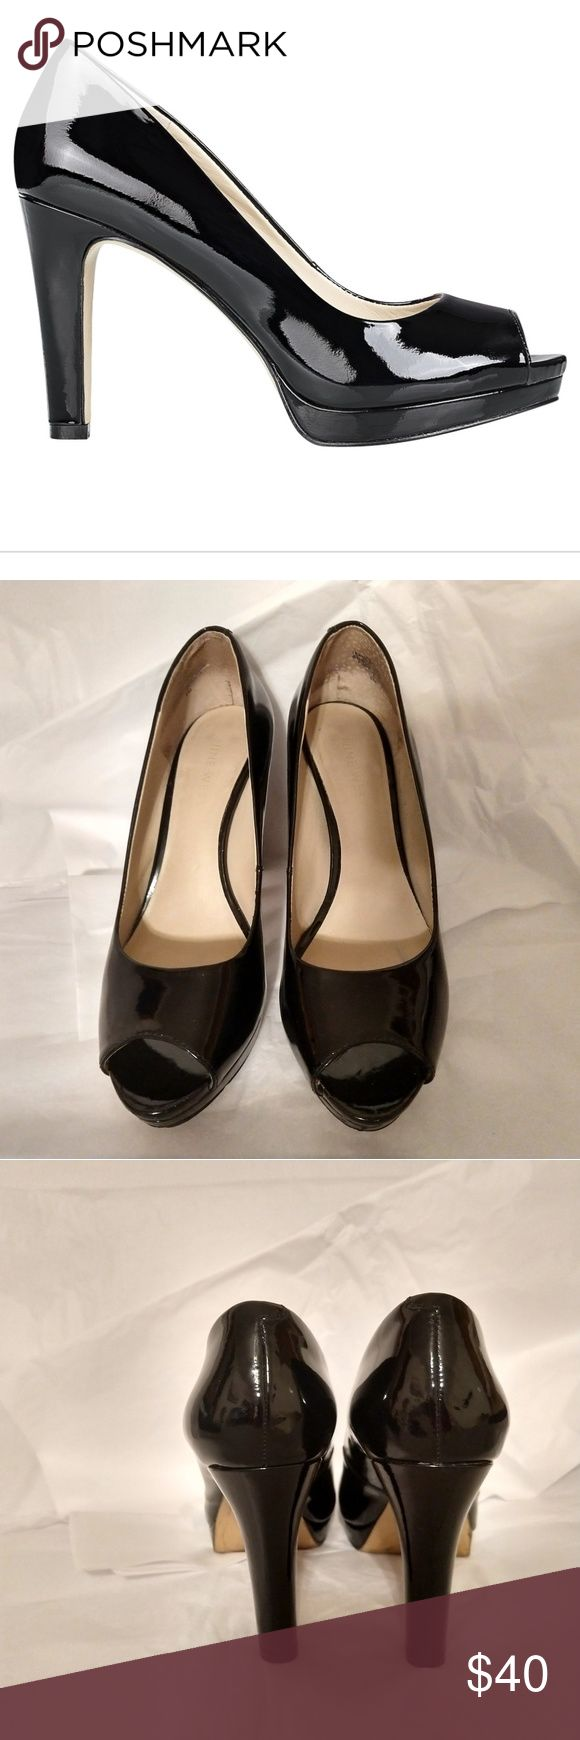 """NINE WEST black patent leather heel @katherineasb NINE WEST Dreenar, black, patent leather heel, leather upper, man made balance, peep toed, 3.5"""" heel. Small white scuff outer right heel (not noticable at distance), wear inside heel at toes from prior padding, wear on bottom of shoes (see pics). Otherwise, gorgeous shoes in great condition. Nine West Shoes Heels"""